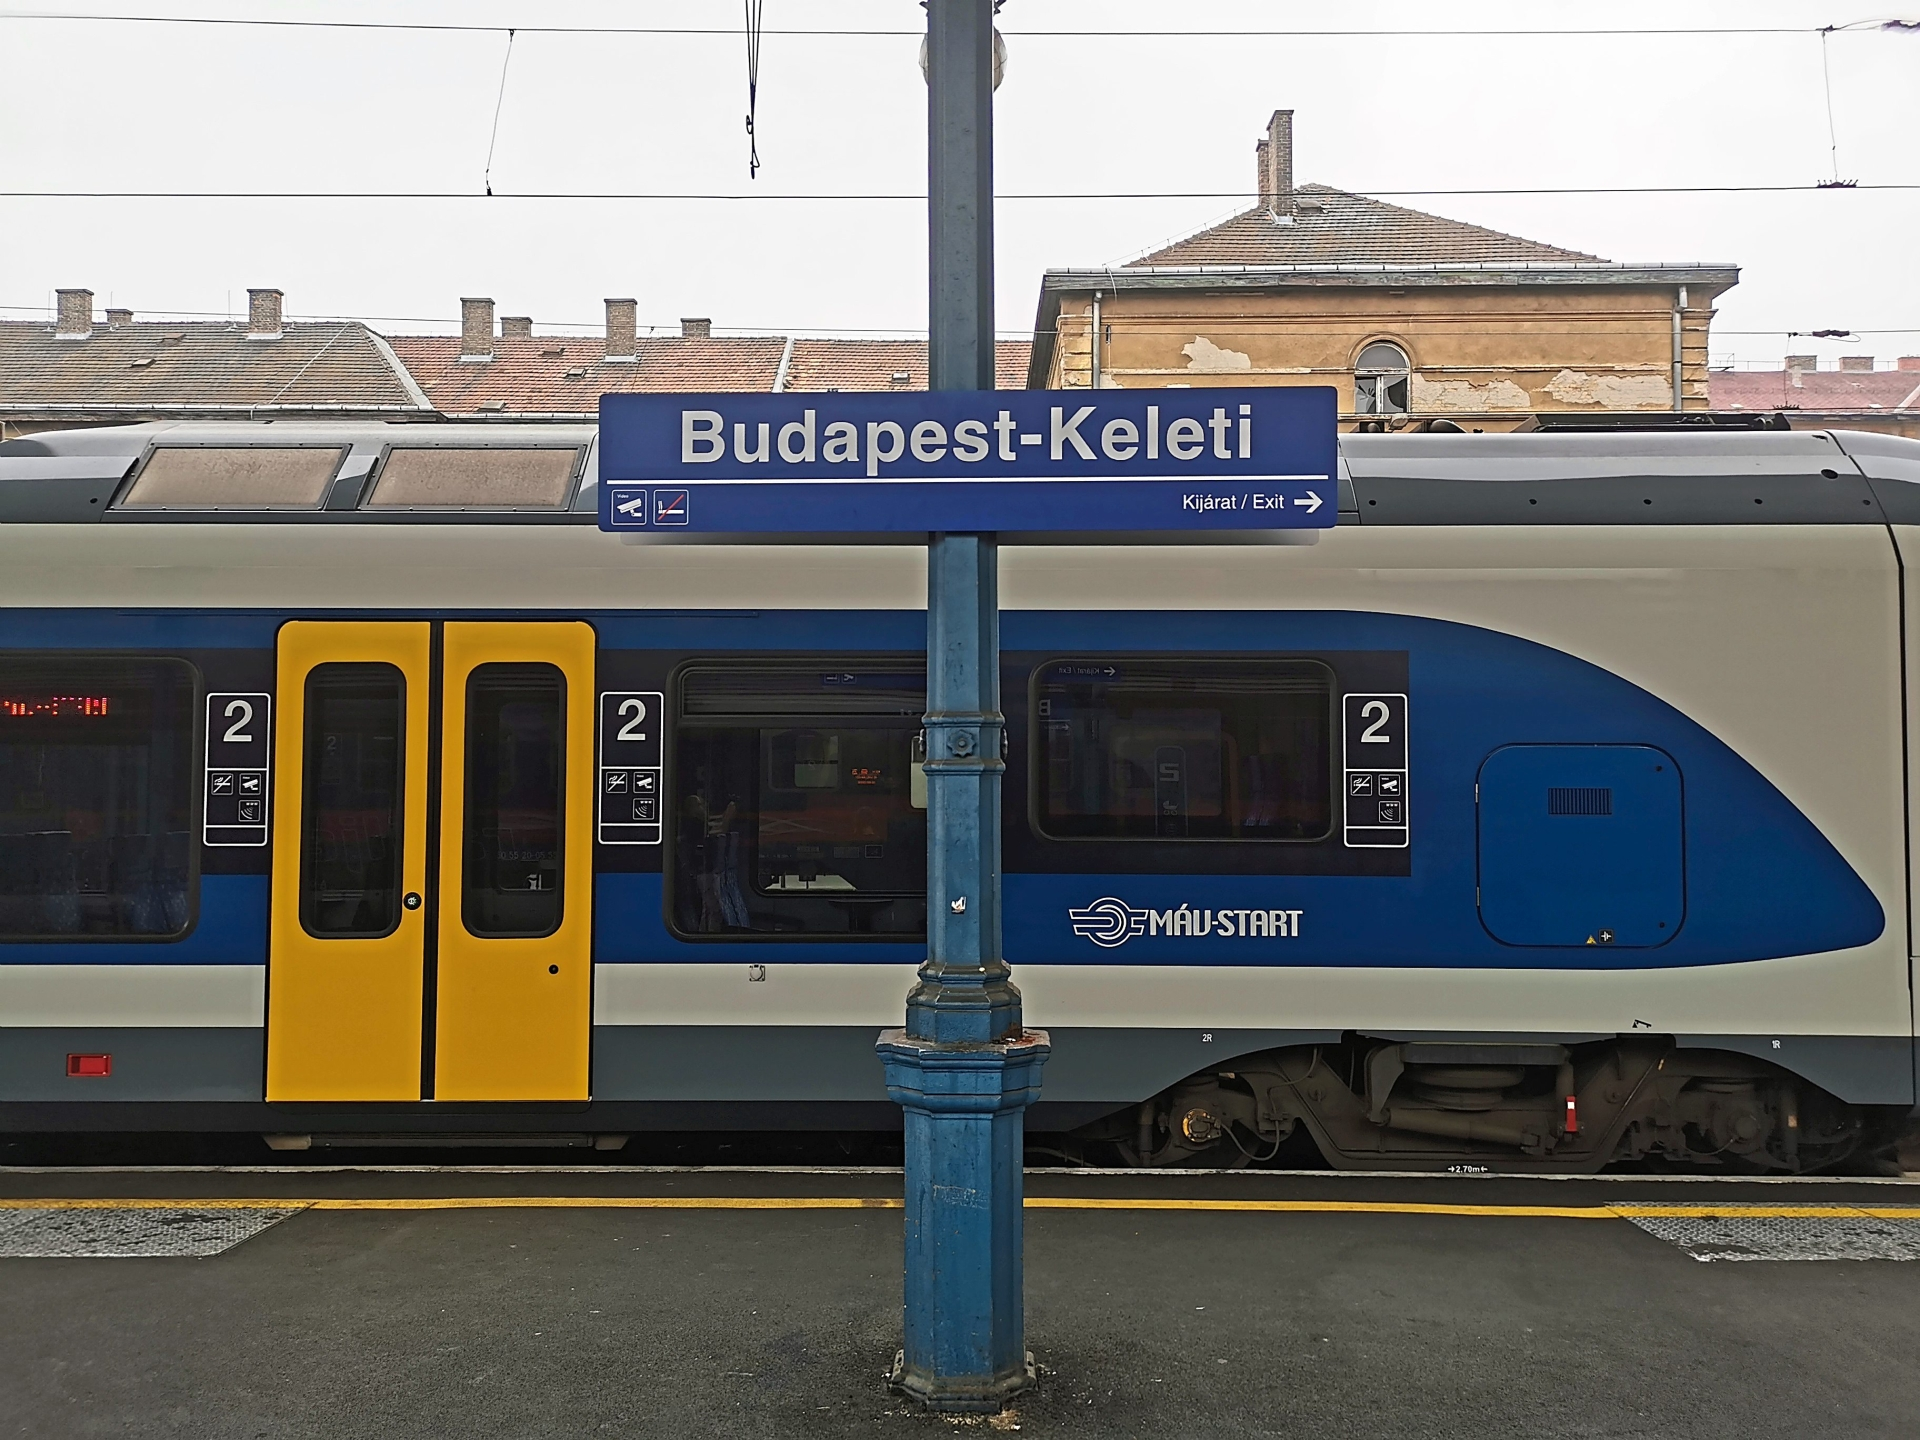 The train stations in Budapest are not manned, but that does not mean you can go for a ride for free.